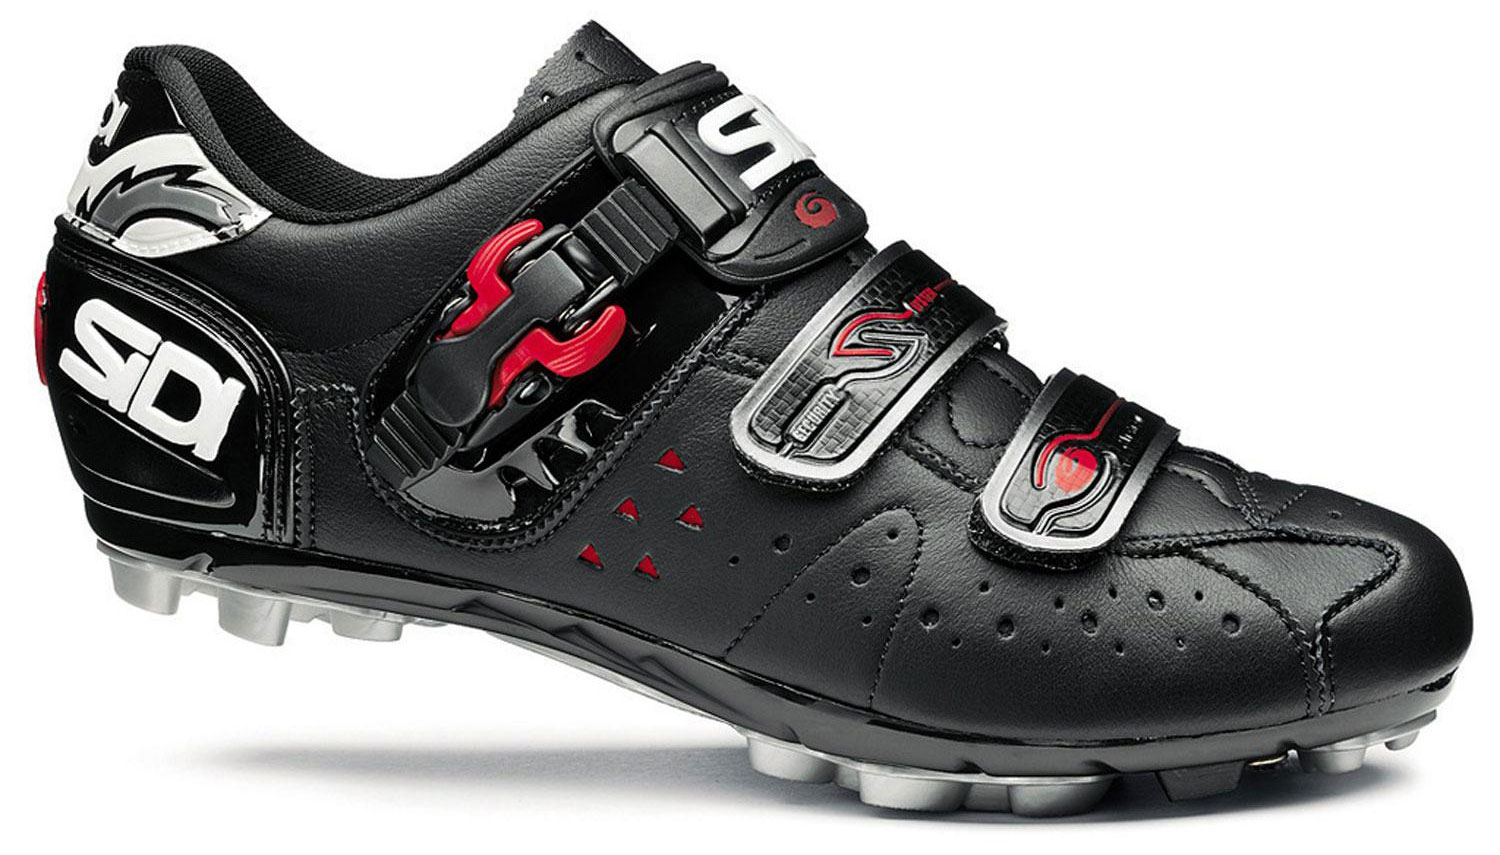 Sidi Dominator 5 Mountain Bike Shoes On The Way The